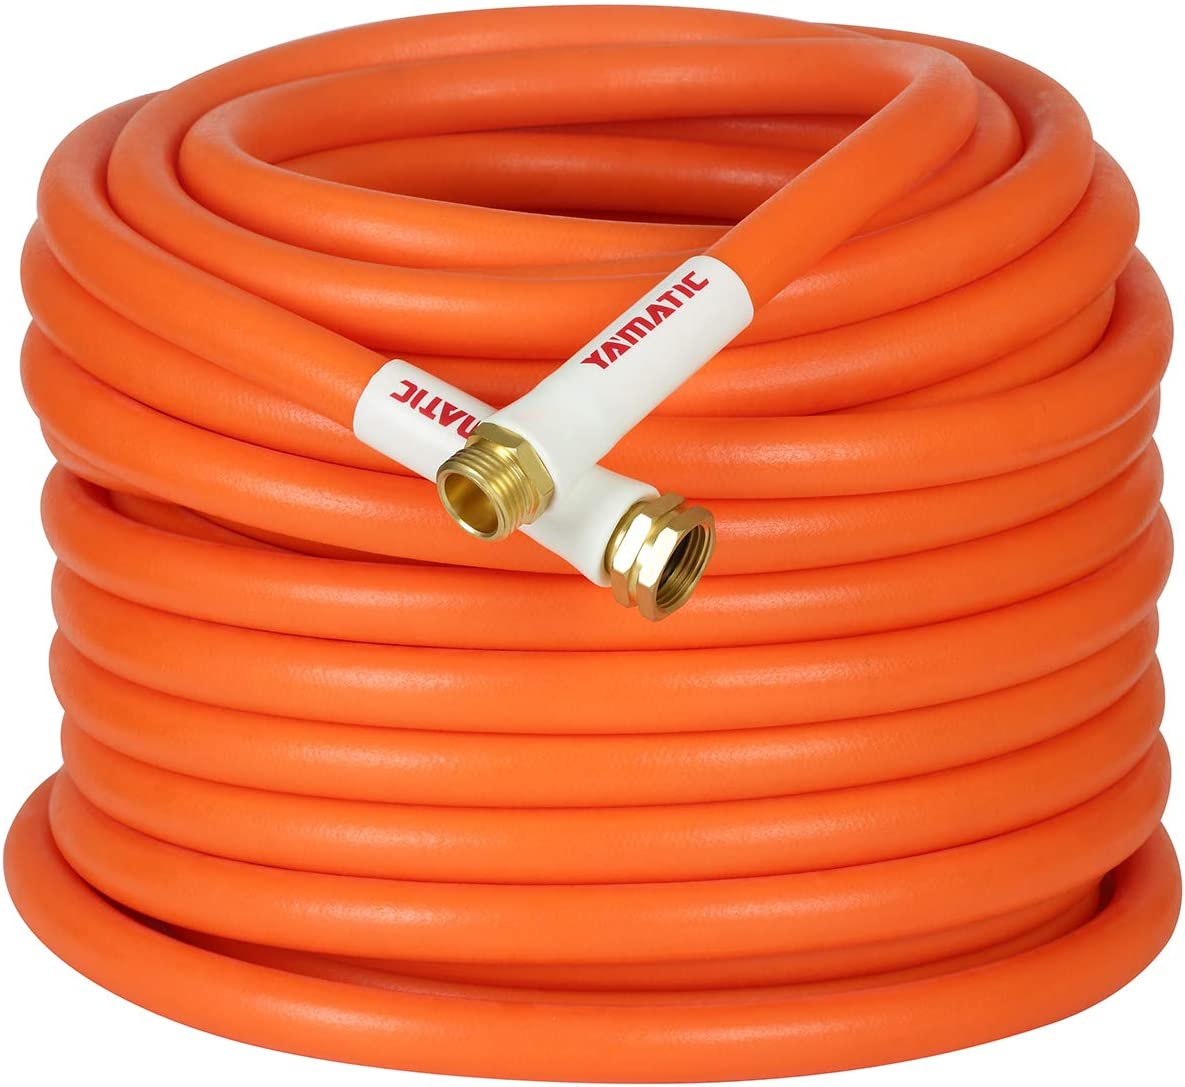 YAMATIC Kink Free Garden Hose 5/8 in. x 100 ft All-Weather Flexibility Water Hose Hybrid, Light Weight, Enhanced Brass Connectors